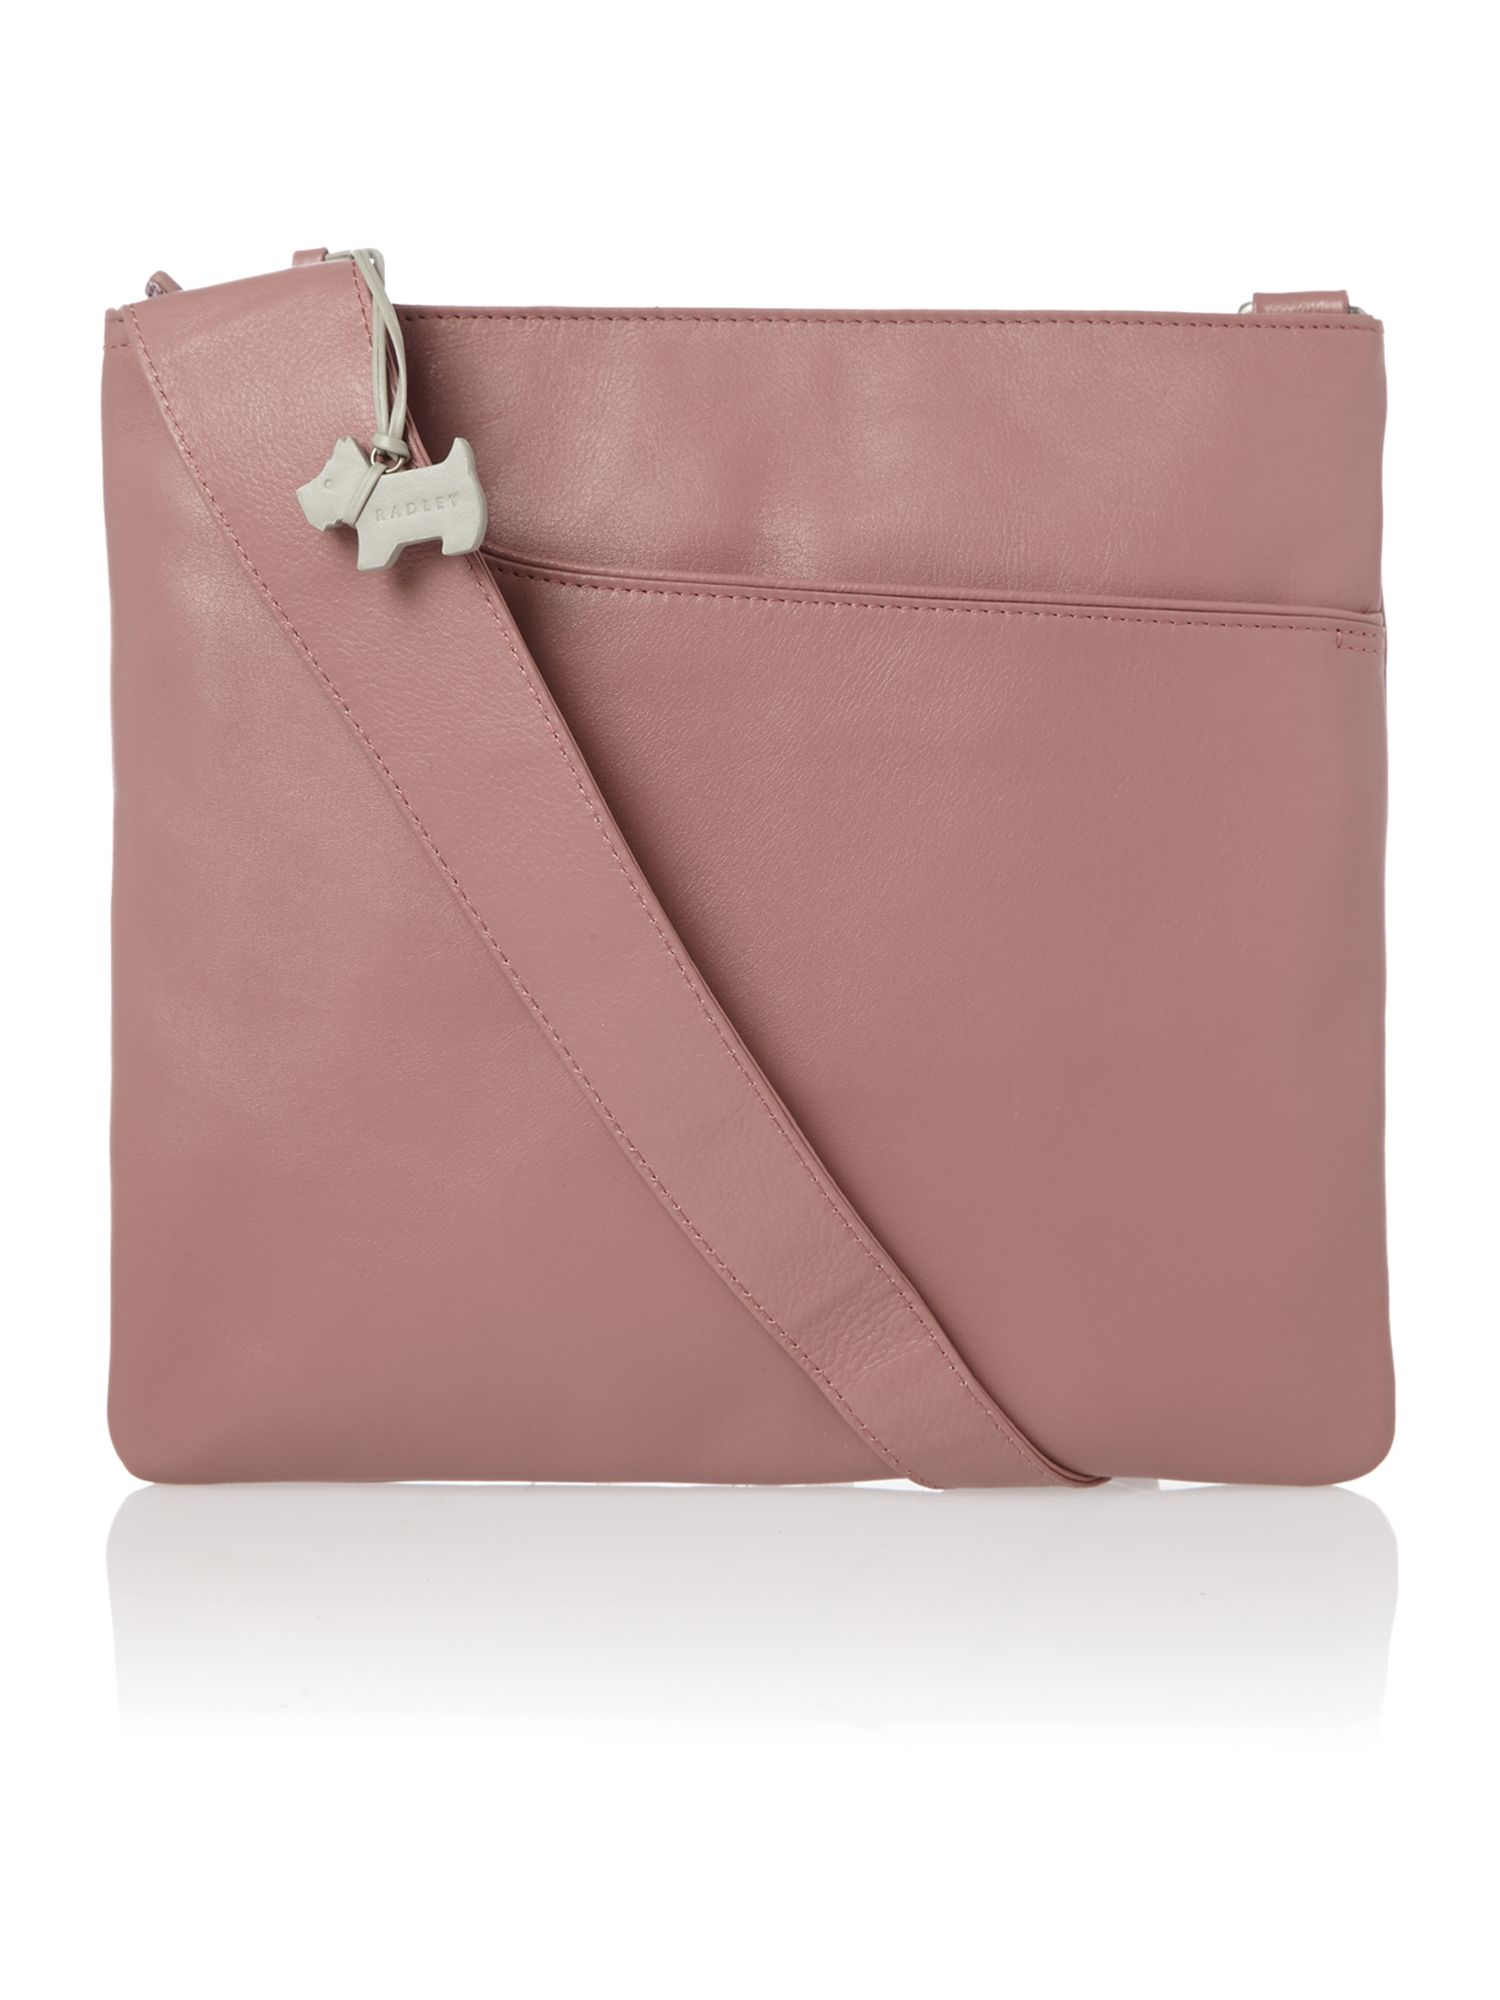 Pocket bag large ziptop xbody leather pink bag